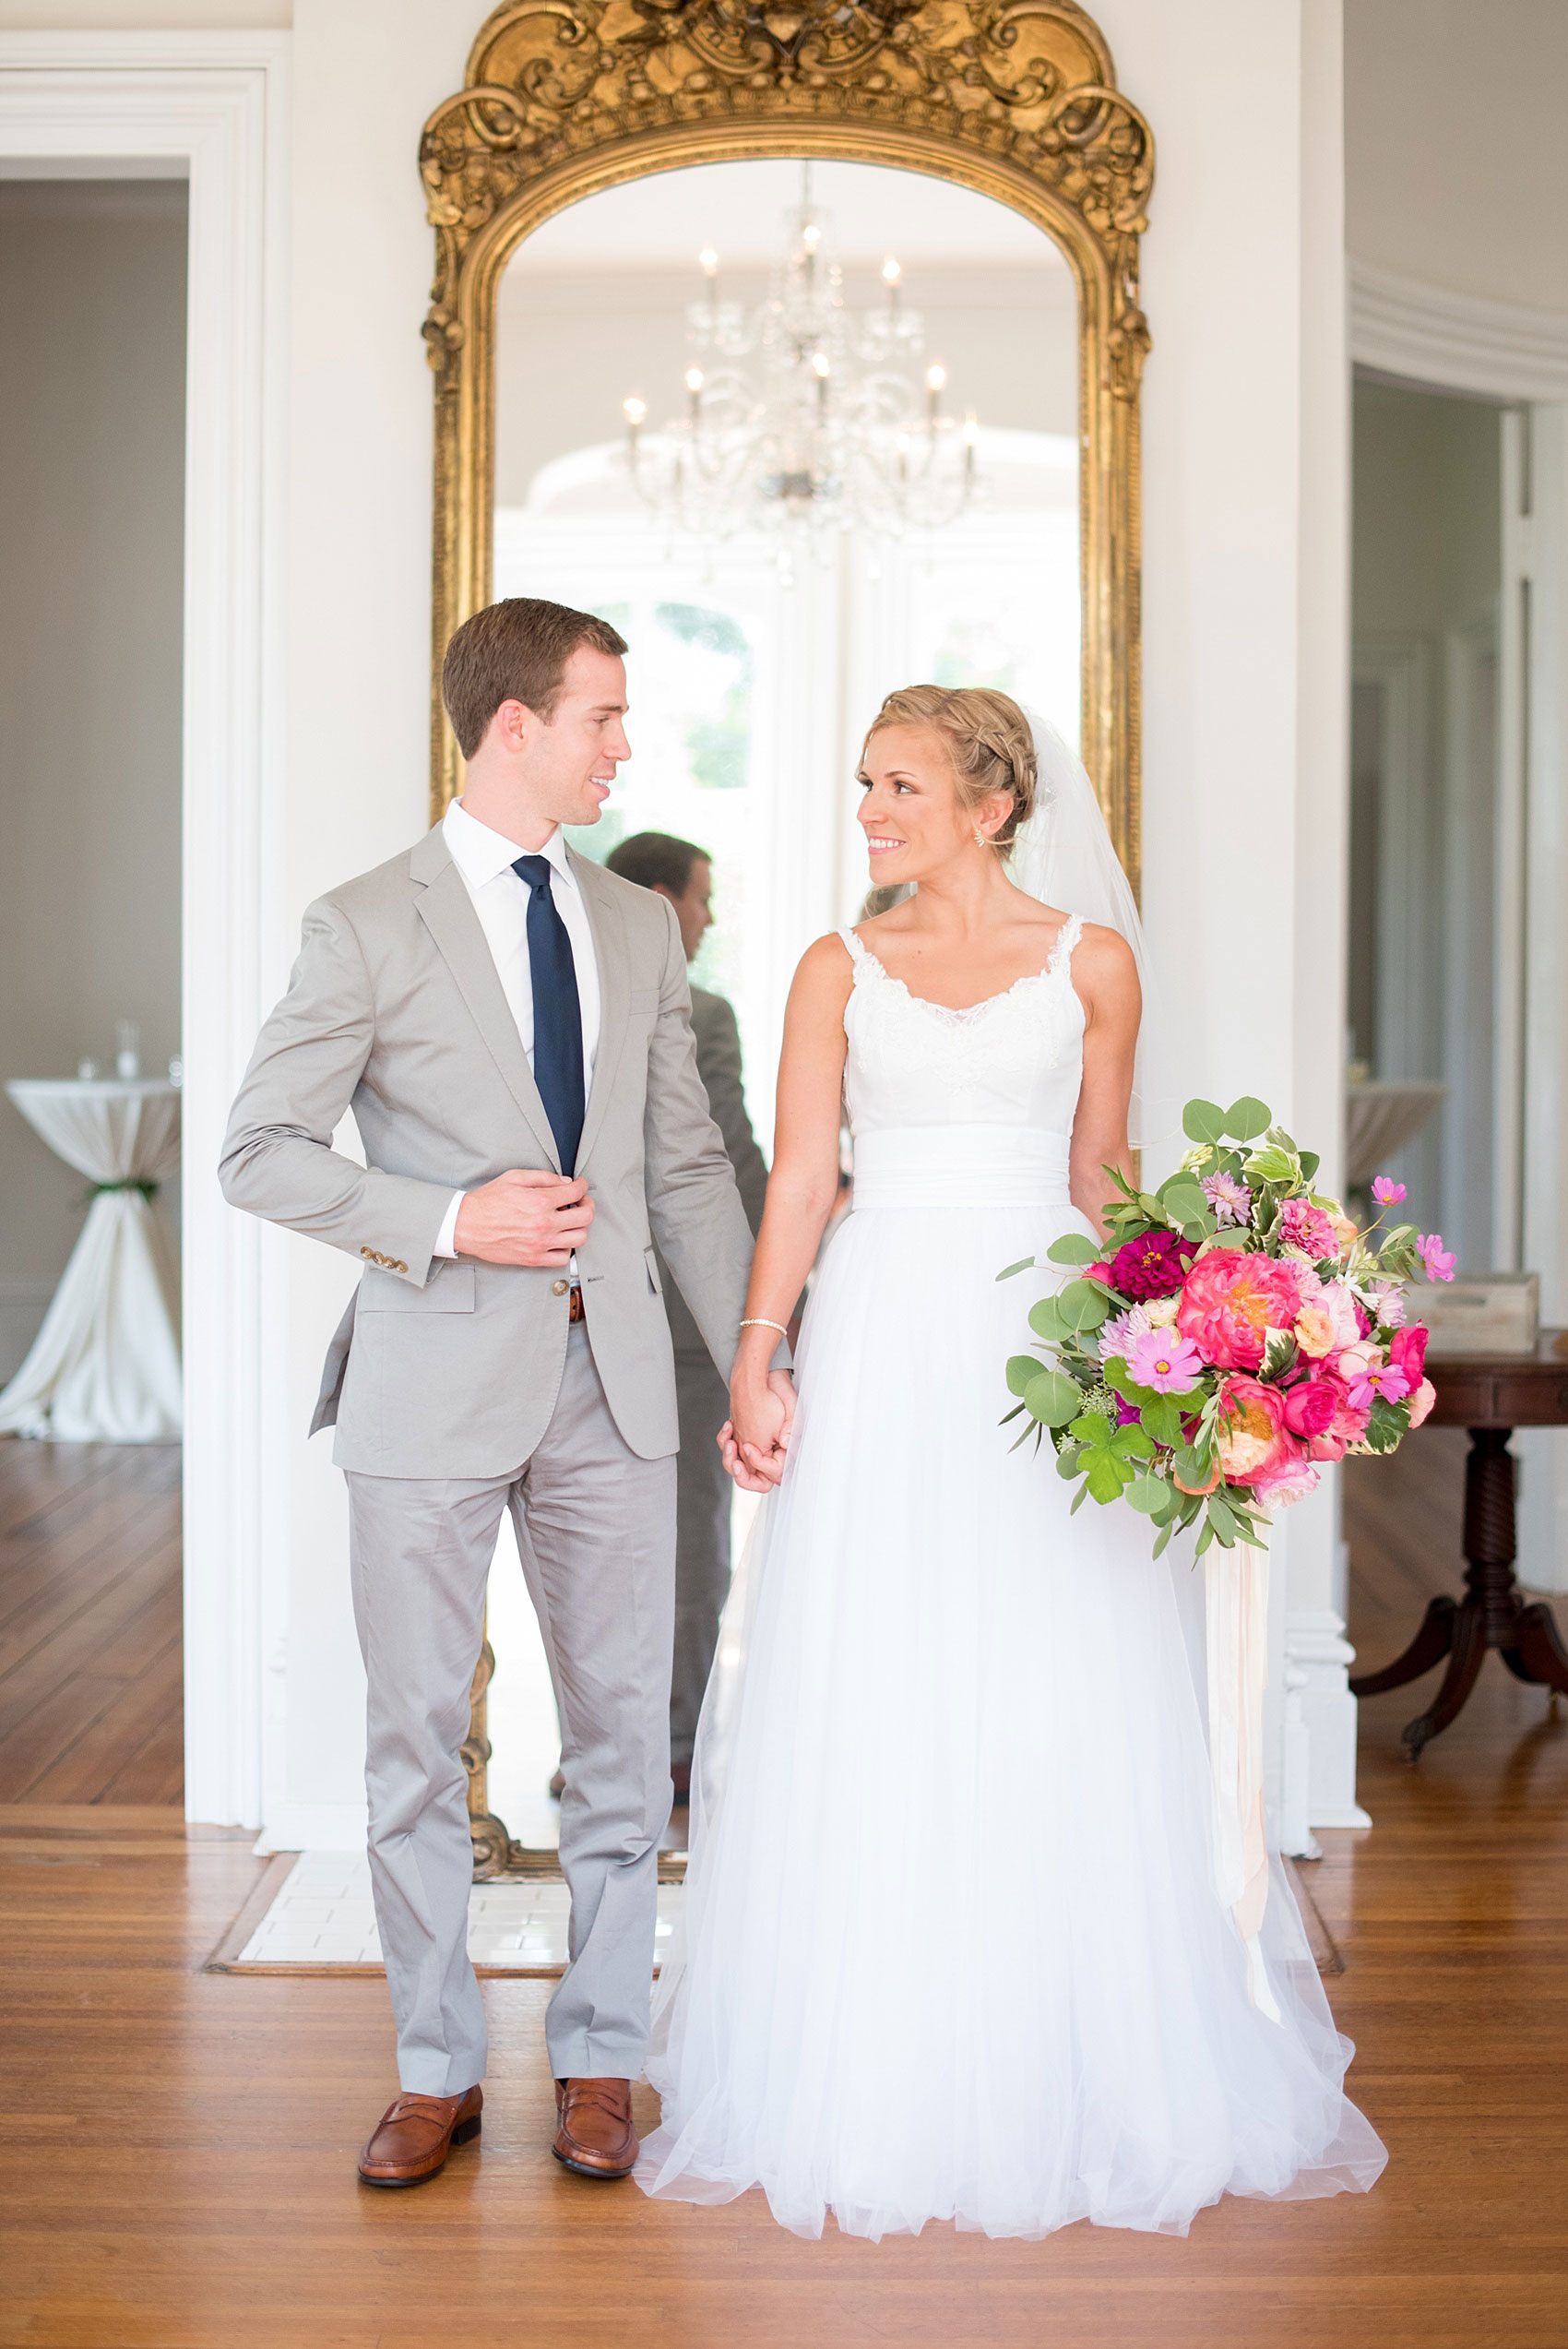 Mikkel Paige Photography wedding photos at The Merrimon-Wynne House in downtown Raleigh. The bride and groom with colorful bouquet and tulle skirt wedding dress.